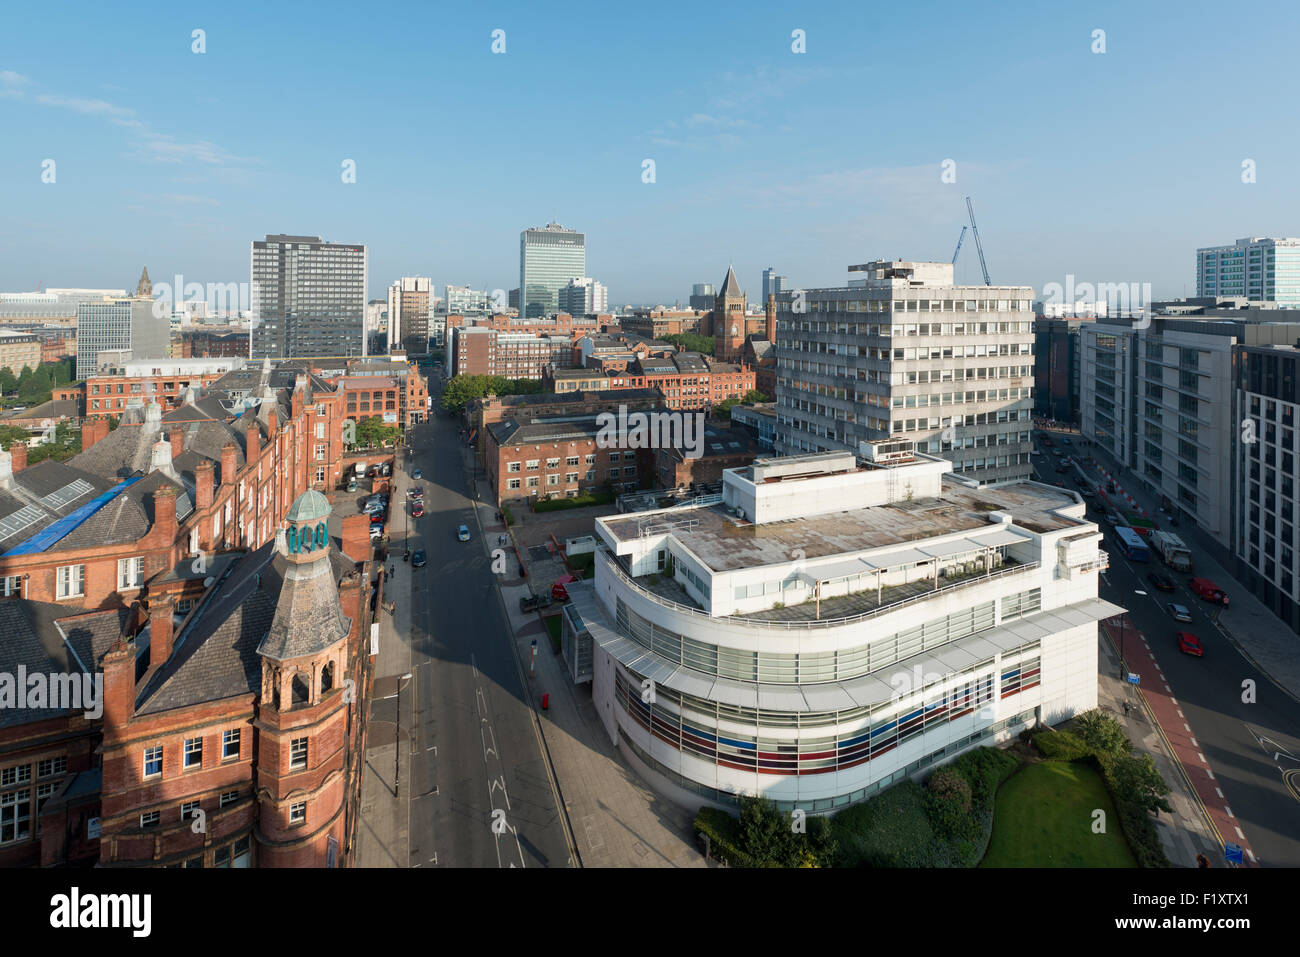 A shot of the city skyline of Manchester, UK, featuring various tall buildings and skyscrapers. - Stock Image